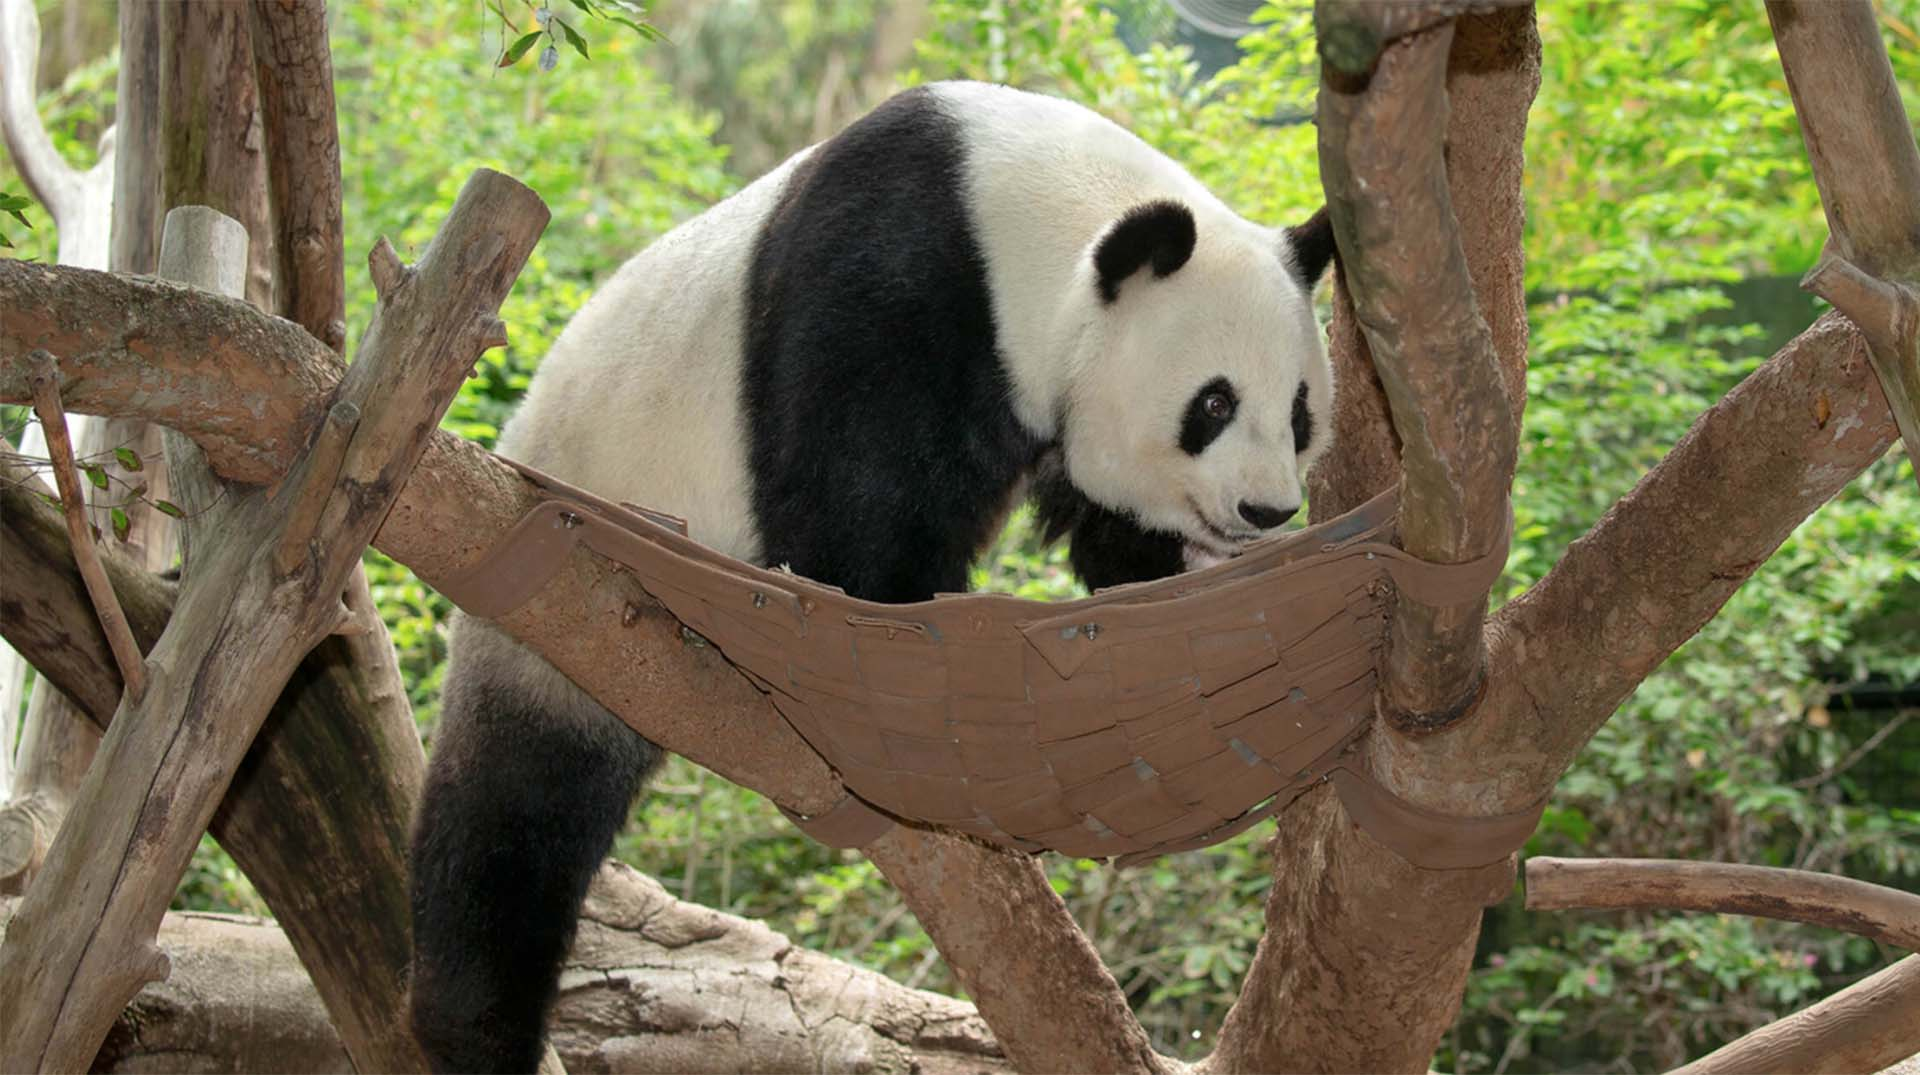 Giant panda with enrichment